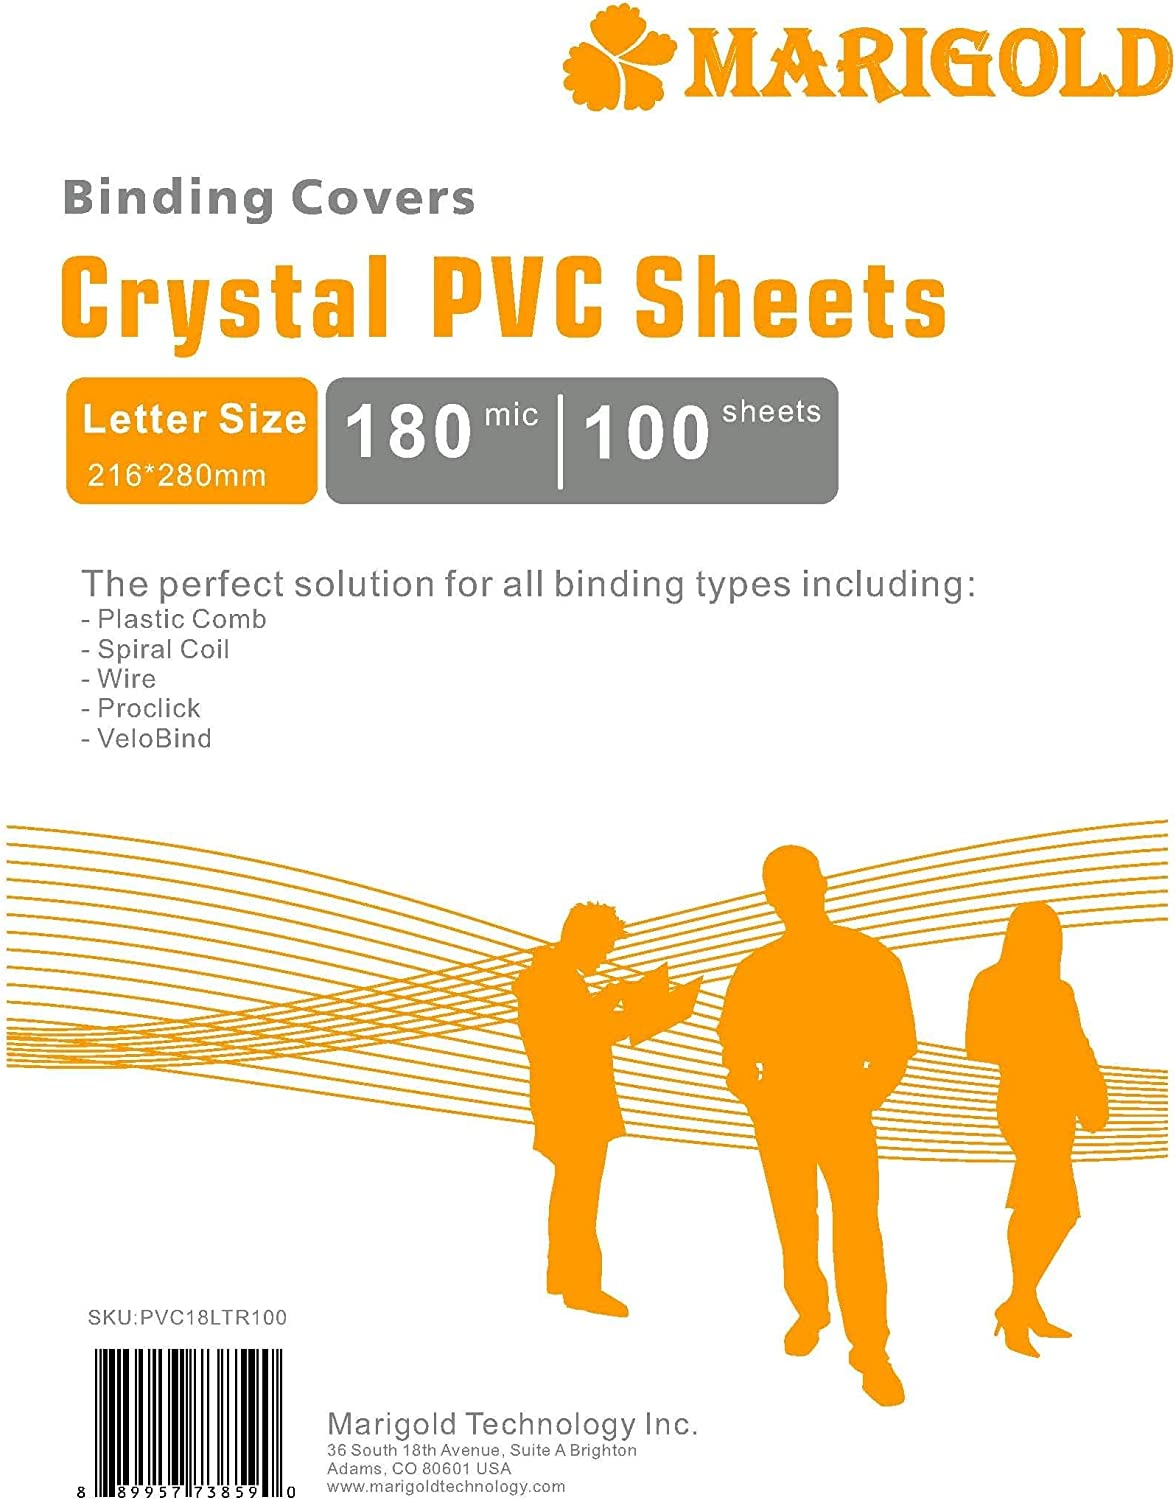 Crystal Clear Binding Covers Presentation Covers - MARIGOLD 100 Pack, 7 mil Letter Size Plastic Covers for Paper, Clear Report Covers, Compatible with GBC, Fellowes and Trubind Binding Machines